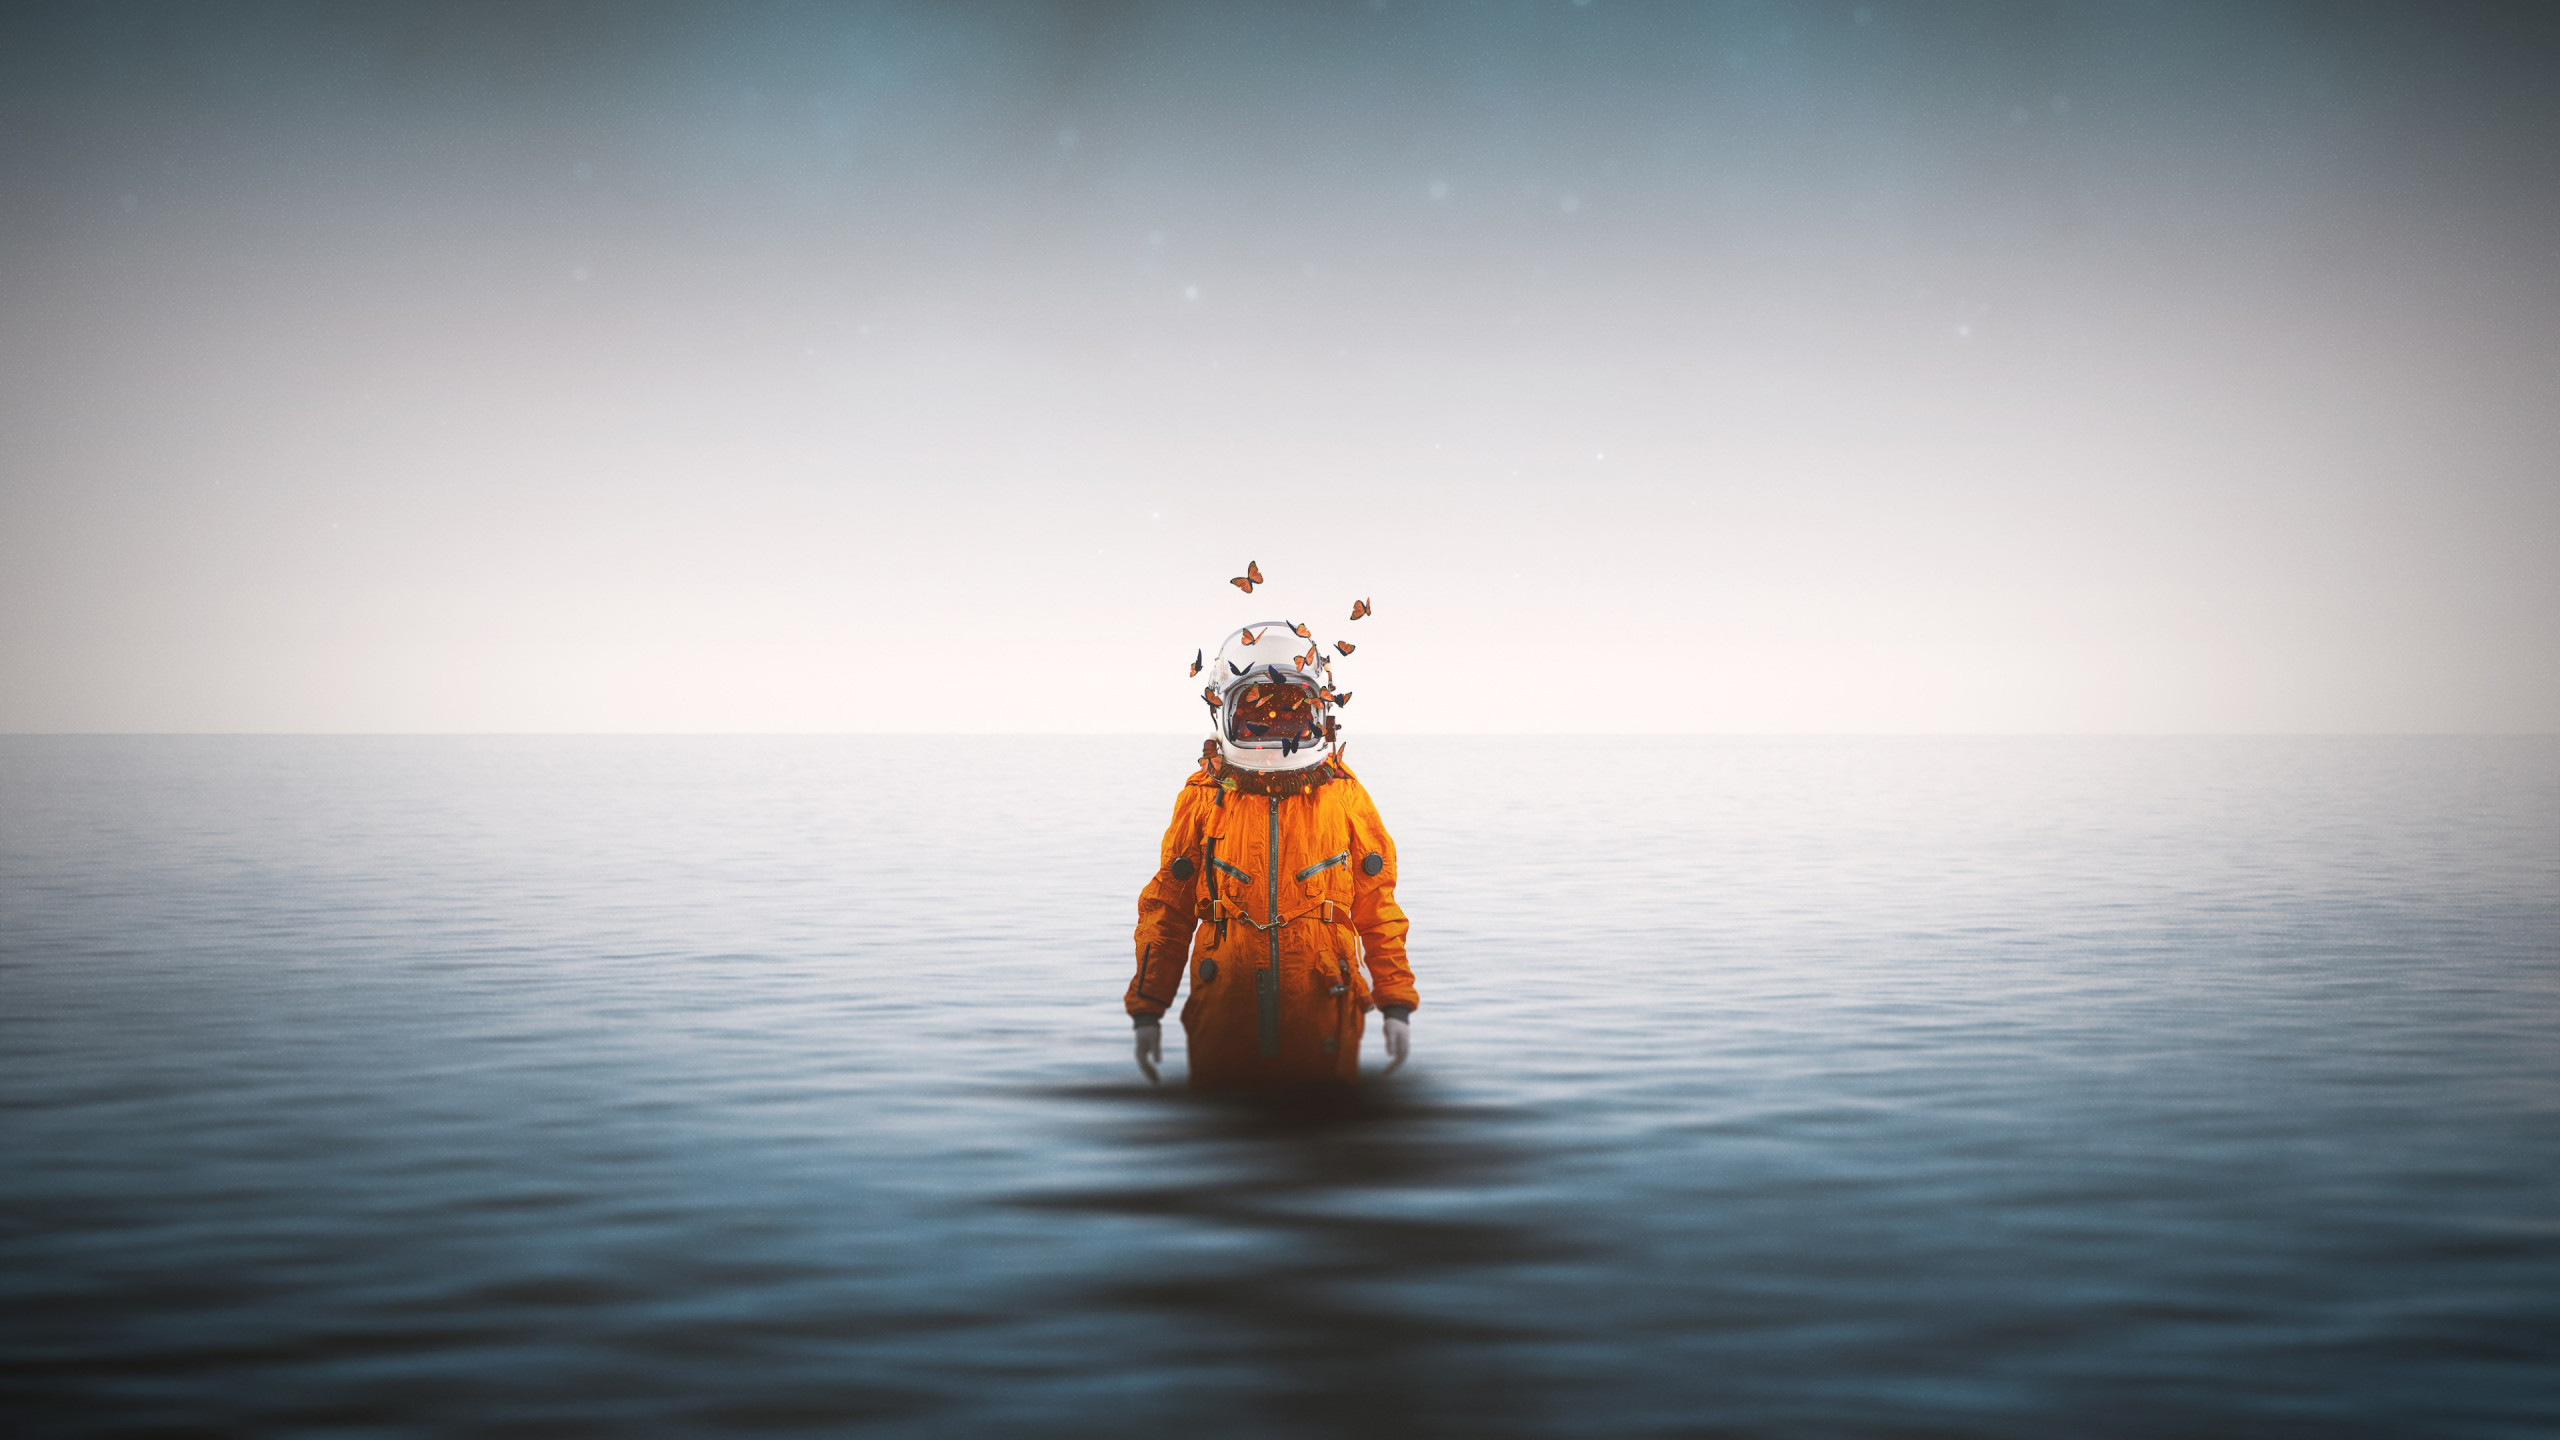 Lonely astronaut wallpaper 2560x1440